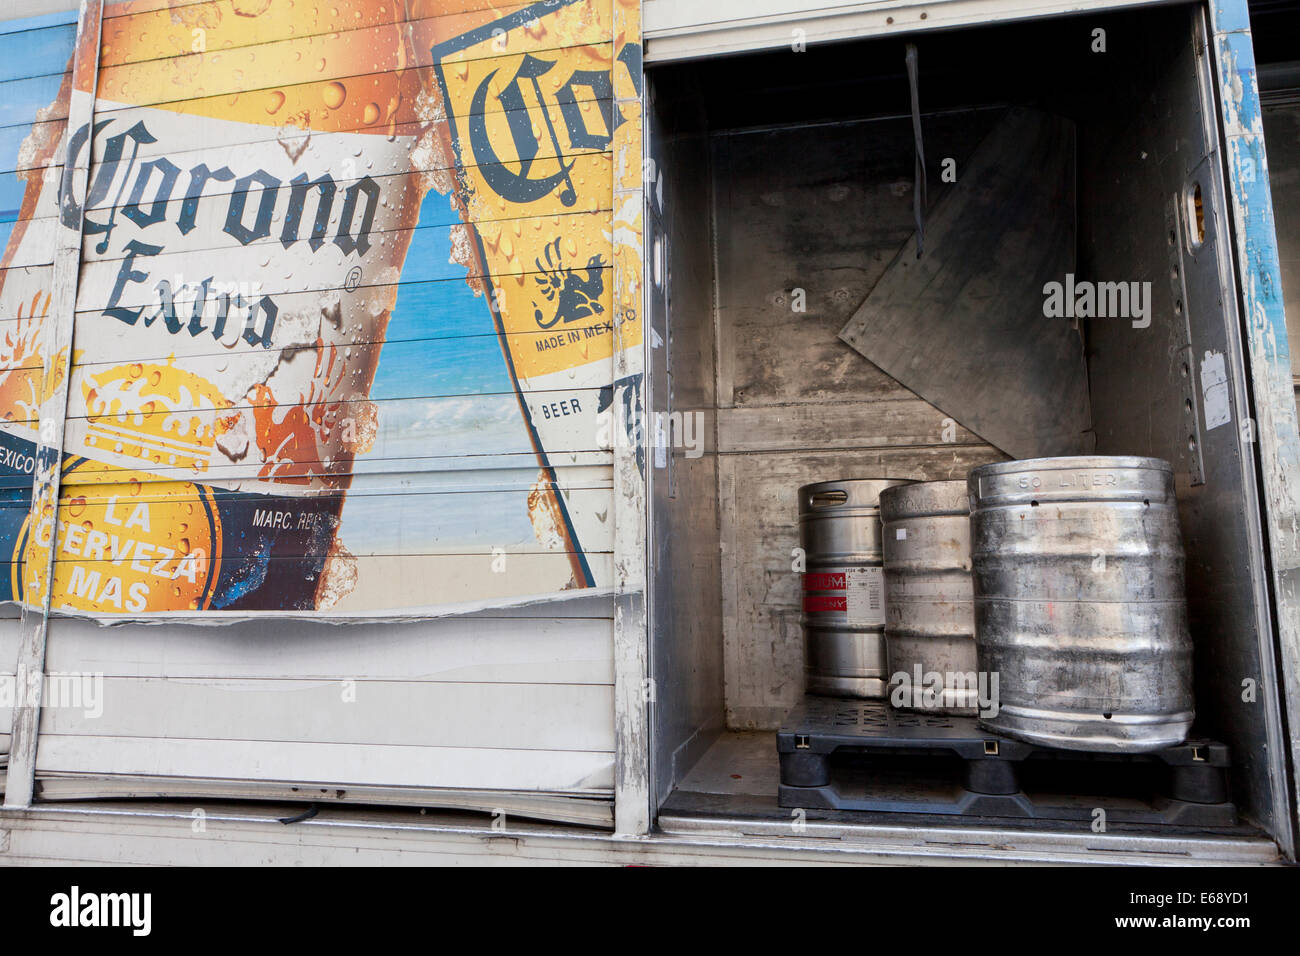 Corona beer kegs in delivery truck - USA - Stock Image